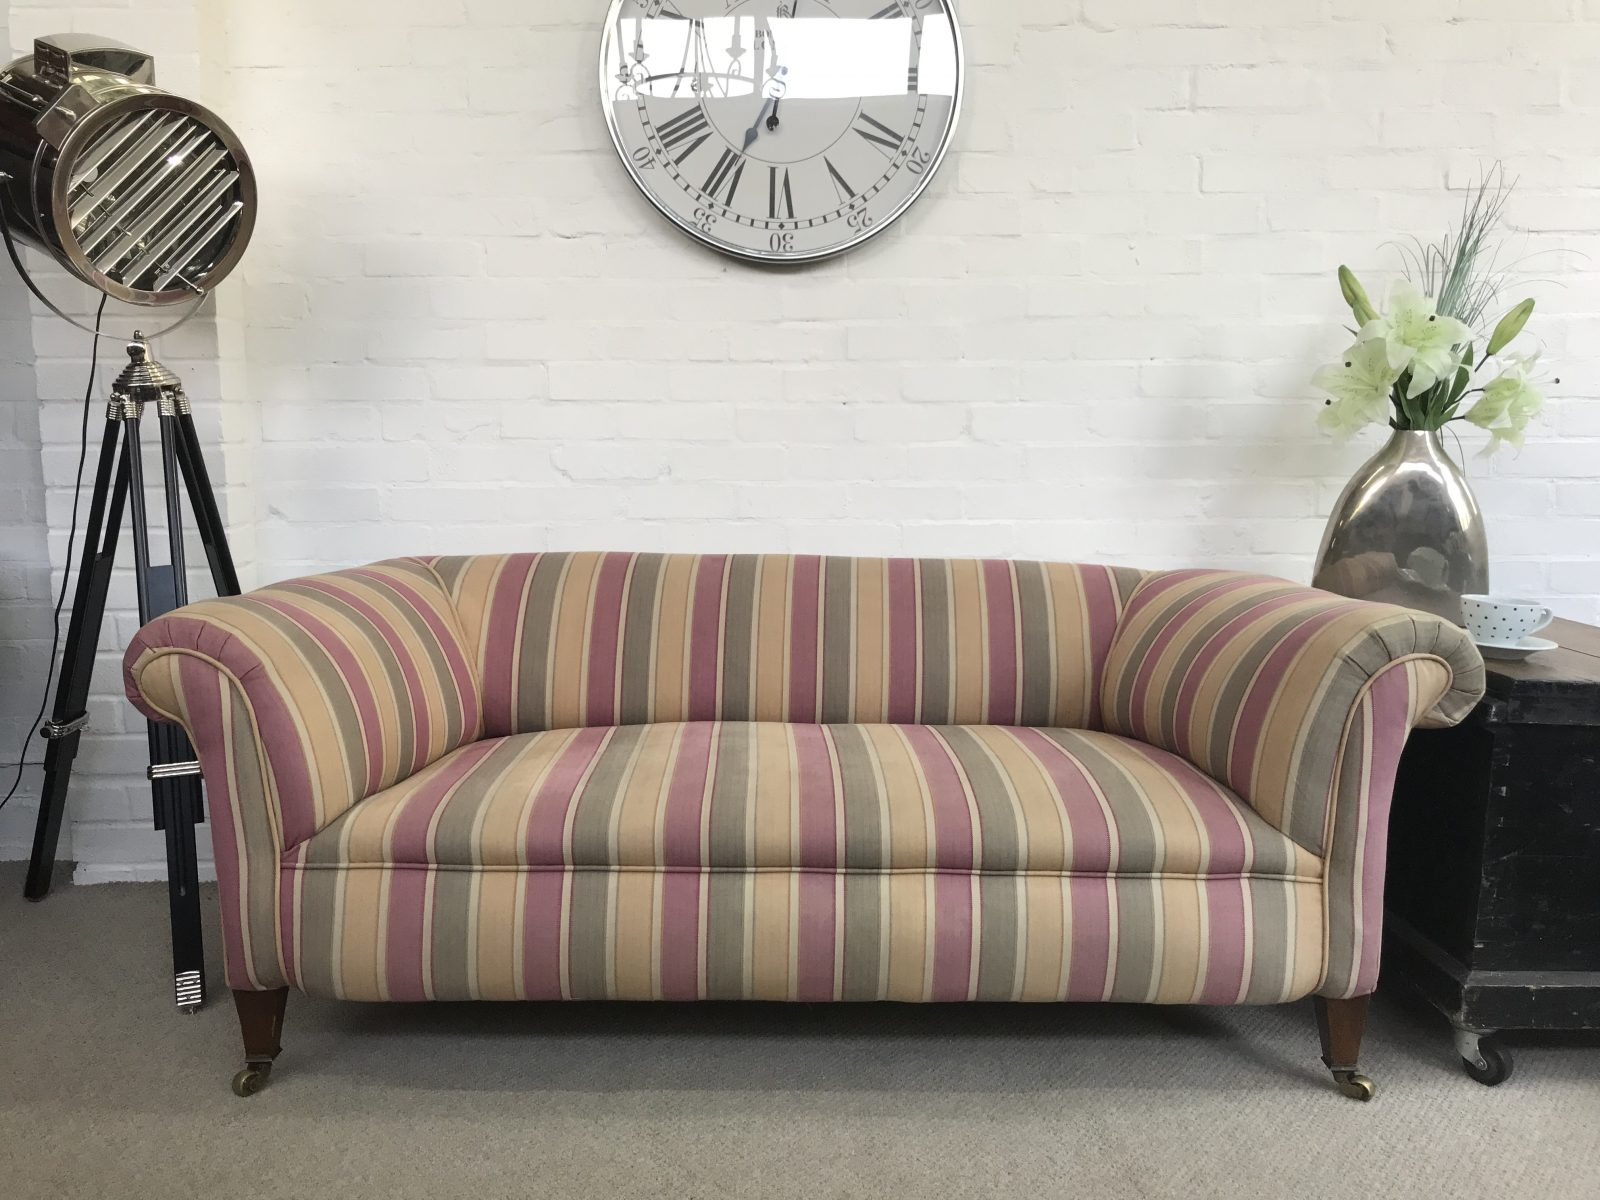 Stunning Antique Edwardian Chesterfield Sofa Chesterfields At The